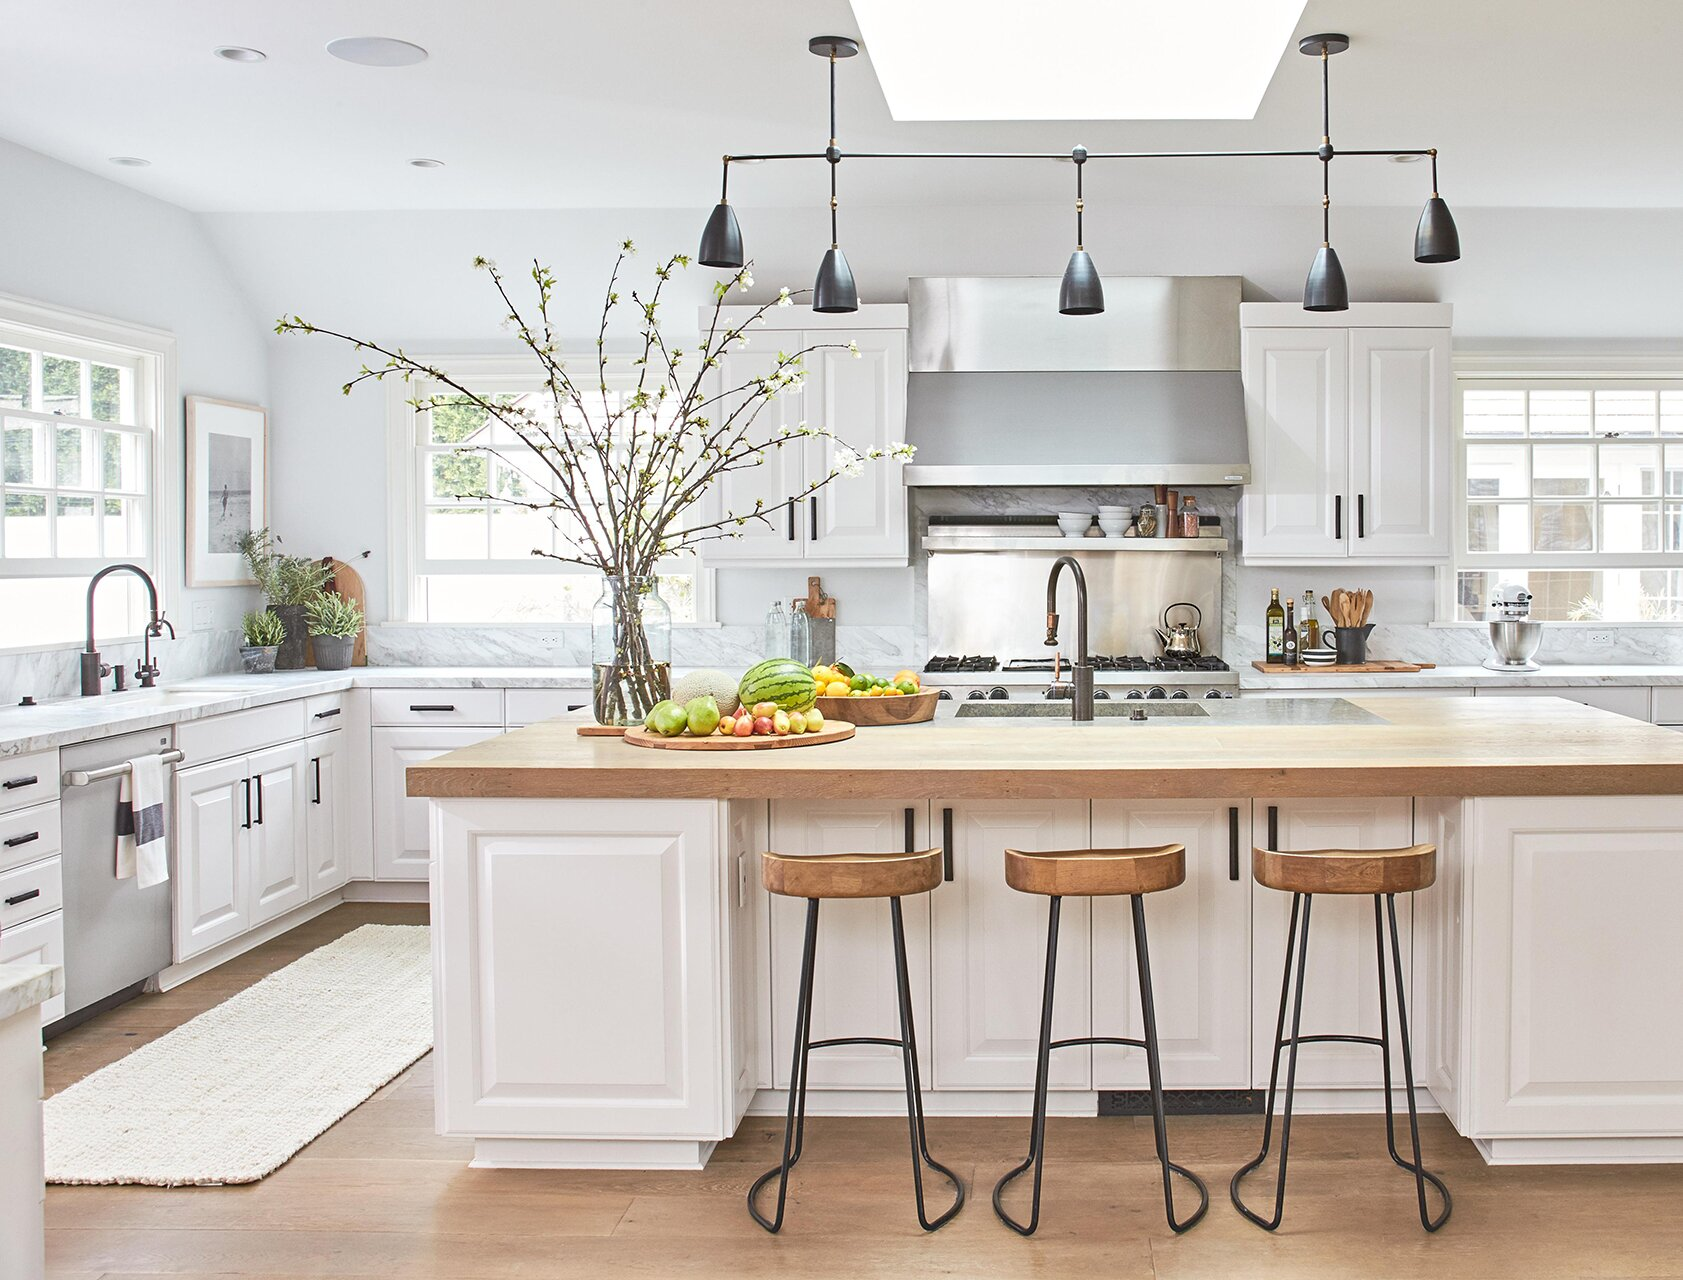 How to Clean Kitchen and Bathroom Countertops